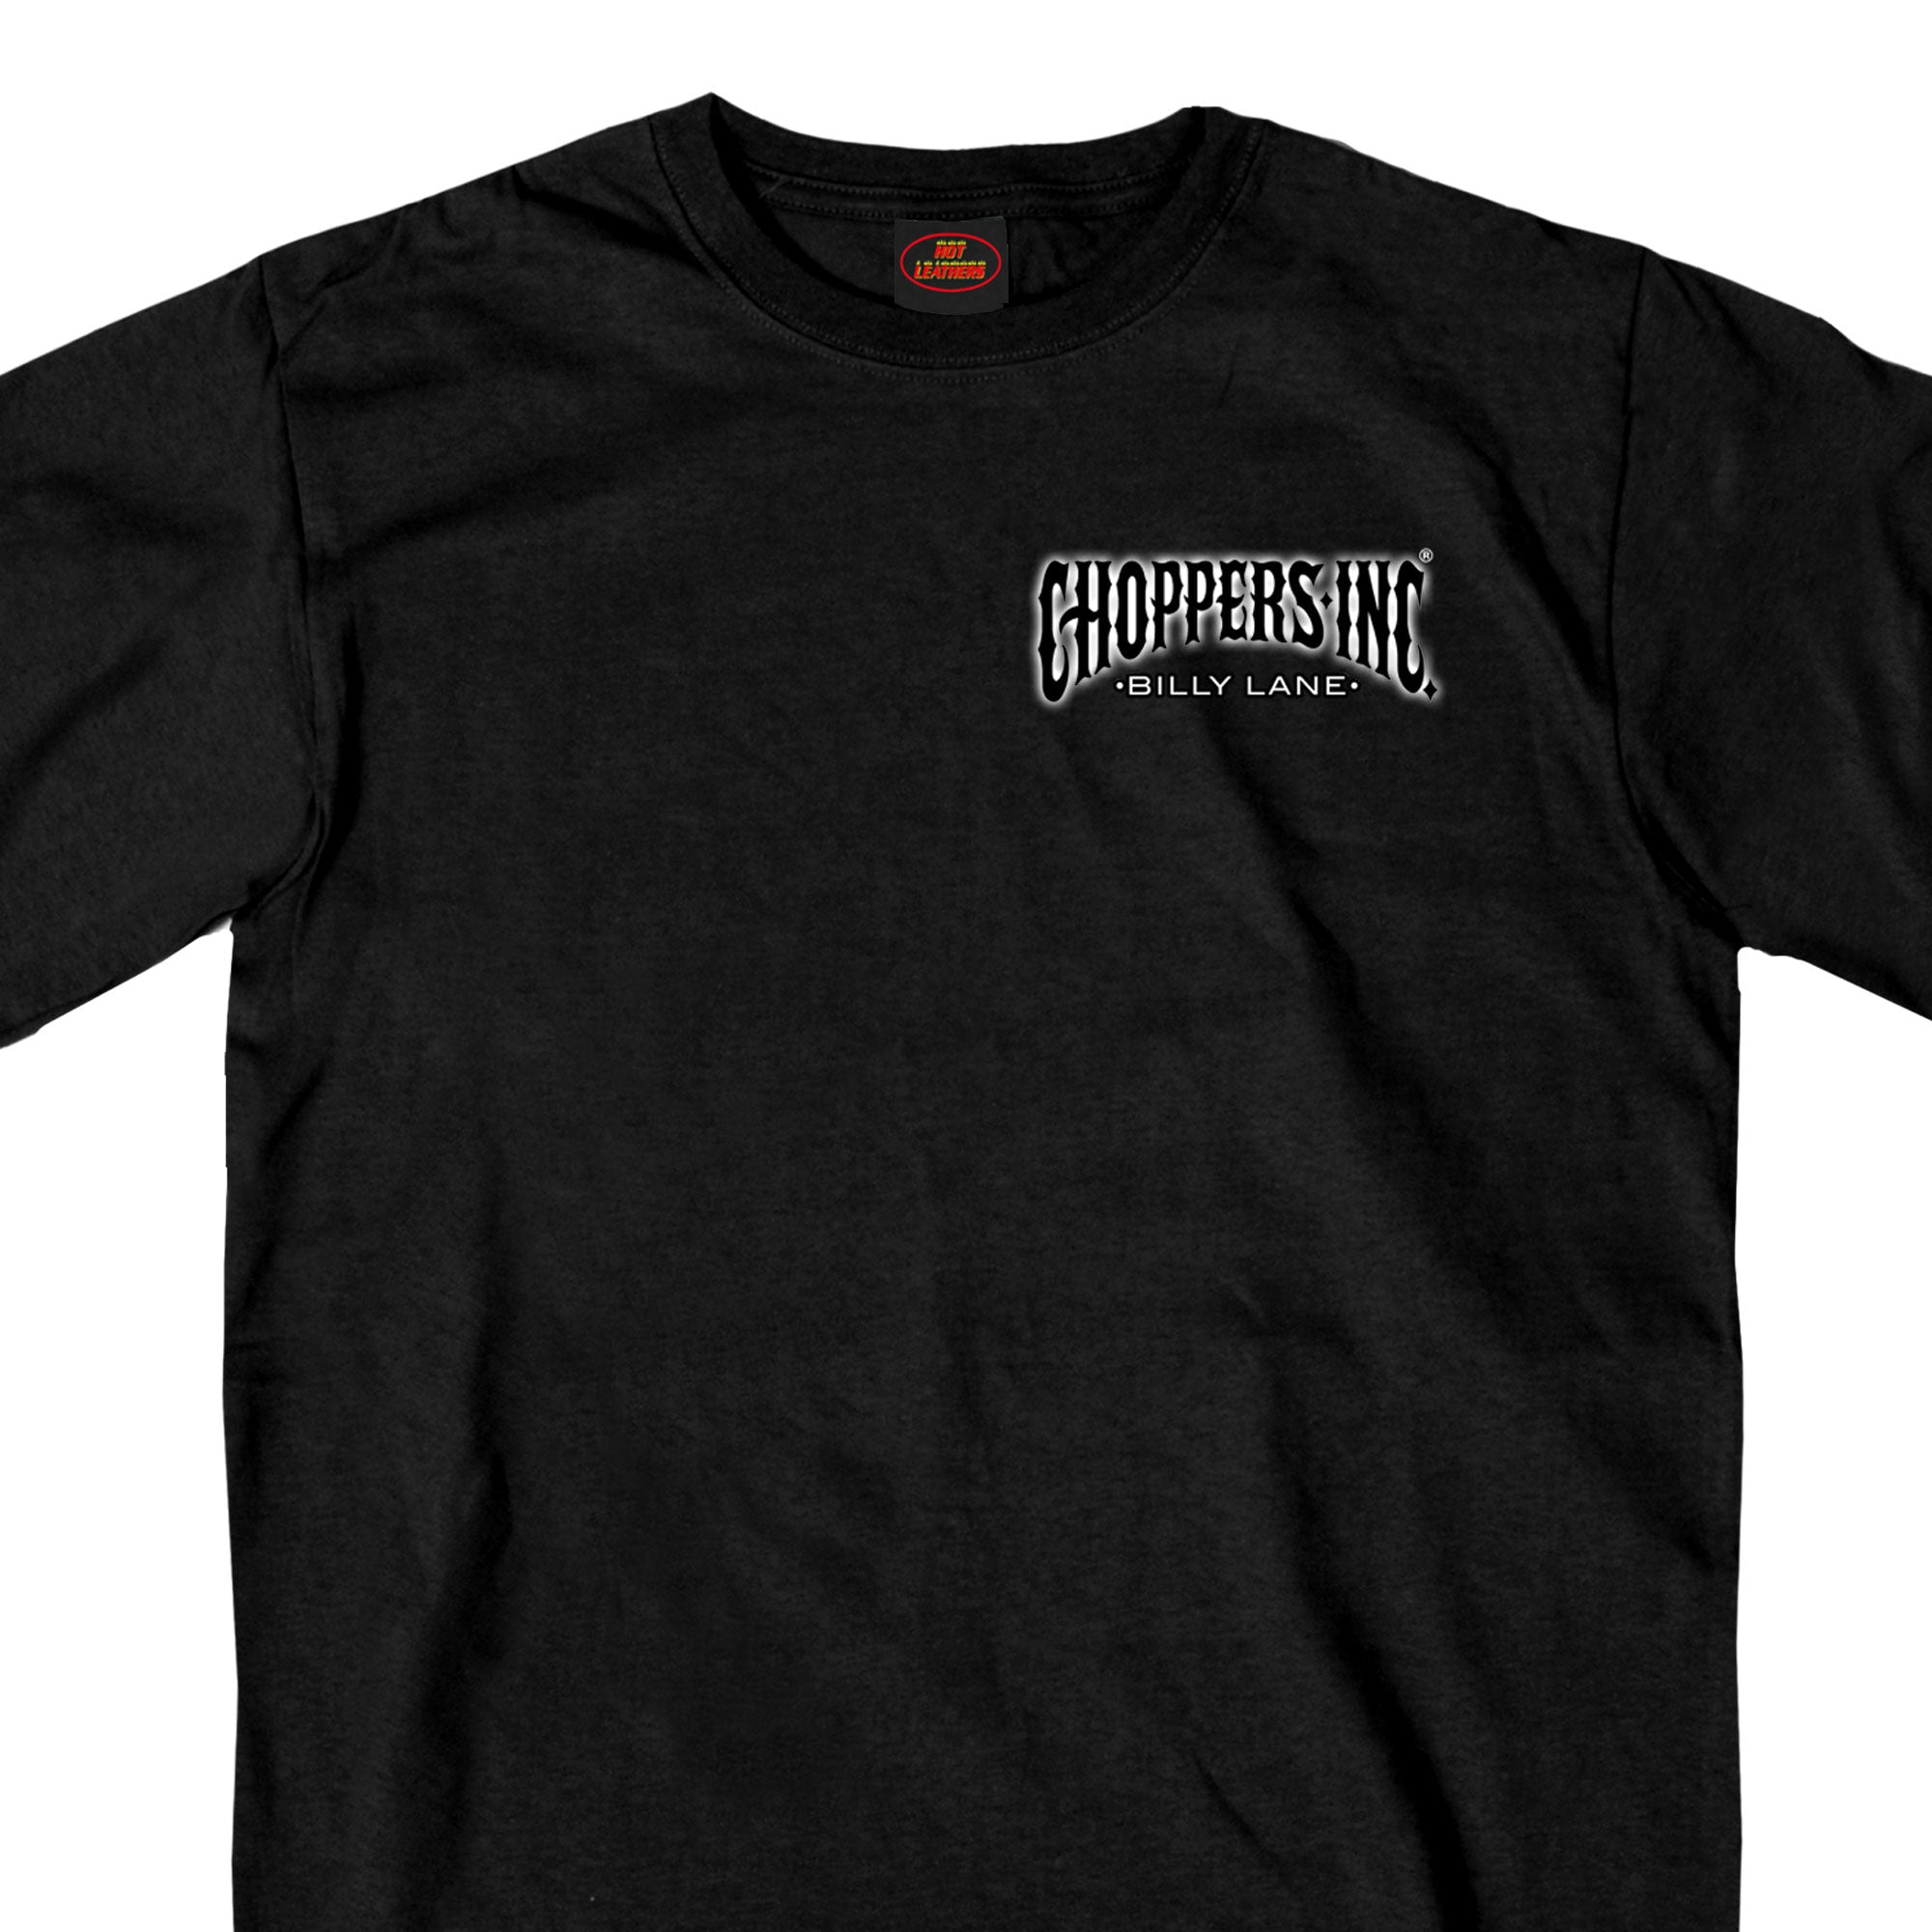 Official Billy Lane's Choppers Inc Welder Two Sided T-Shirt